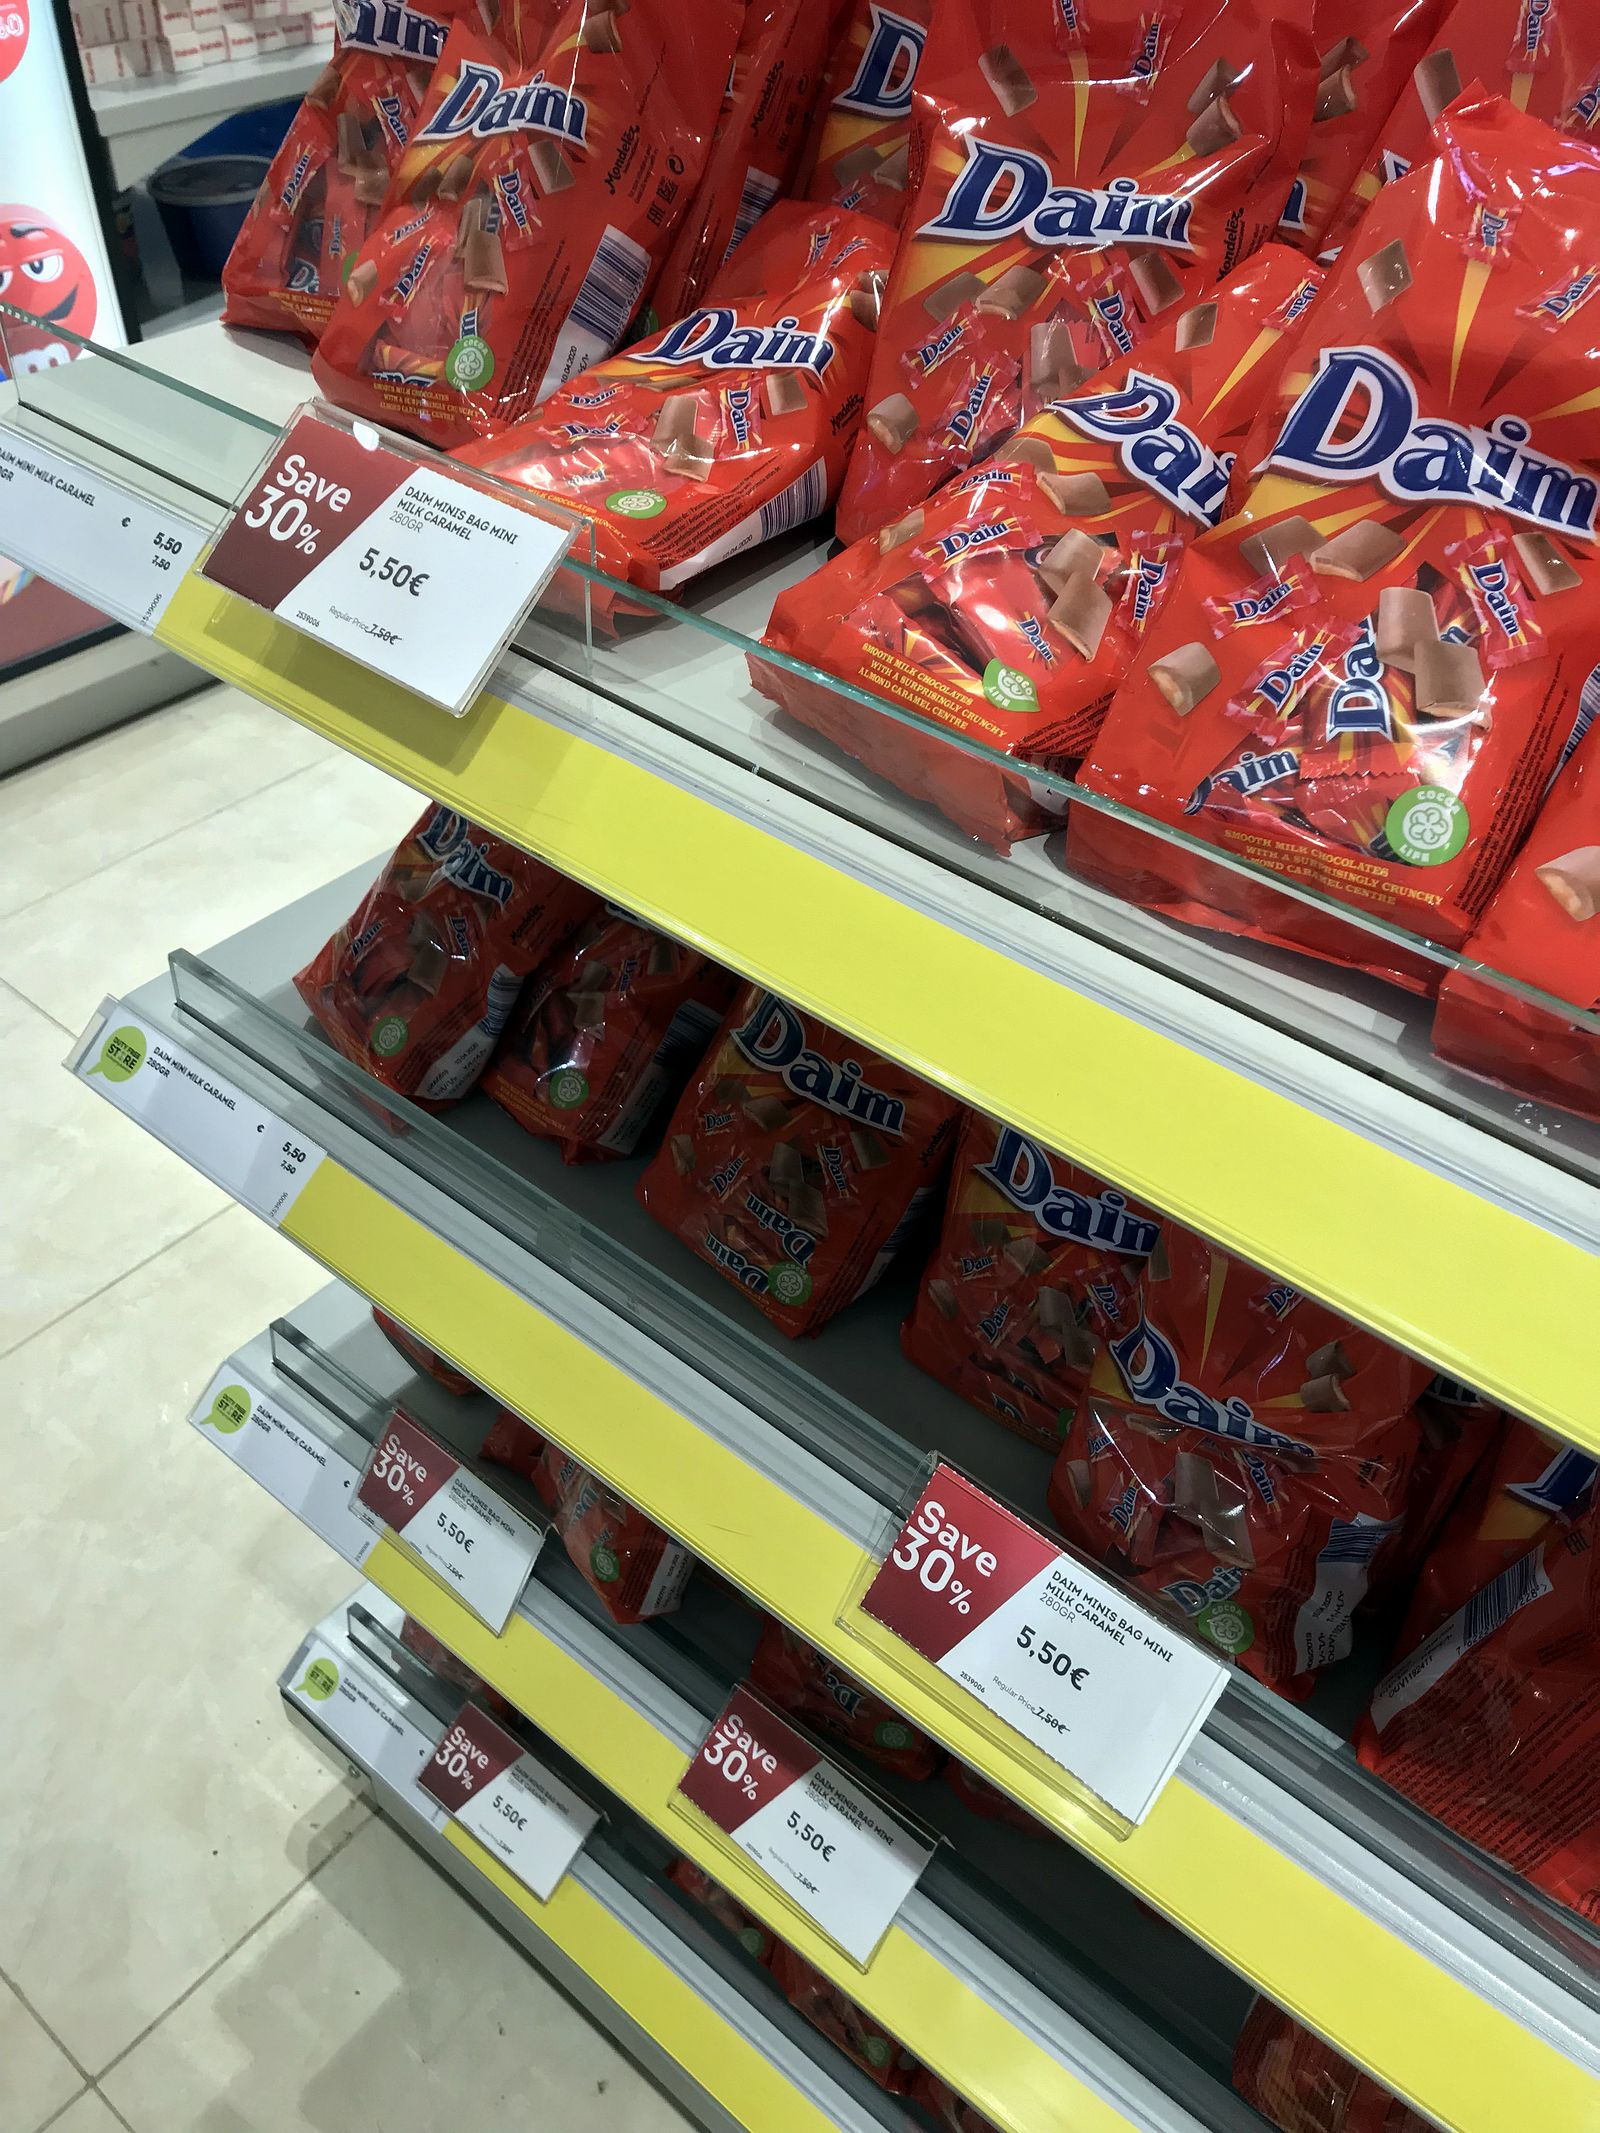 Duty free Antalya, august 2019, Daim